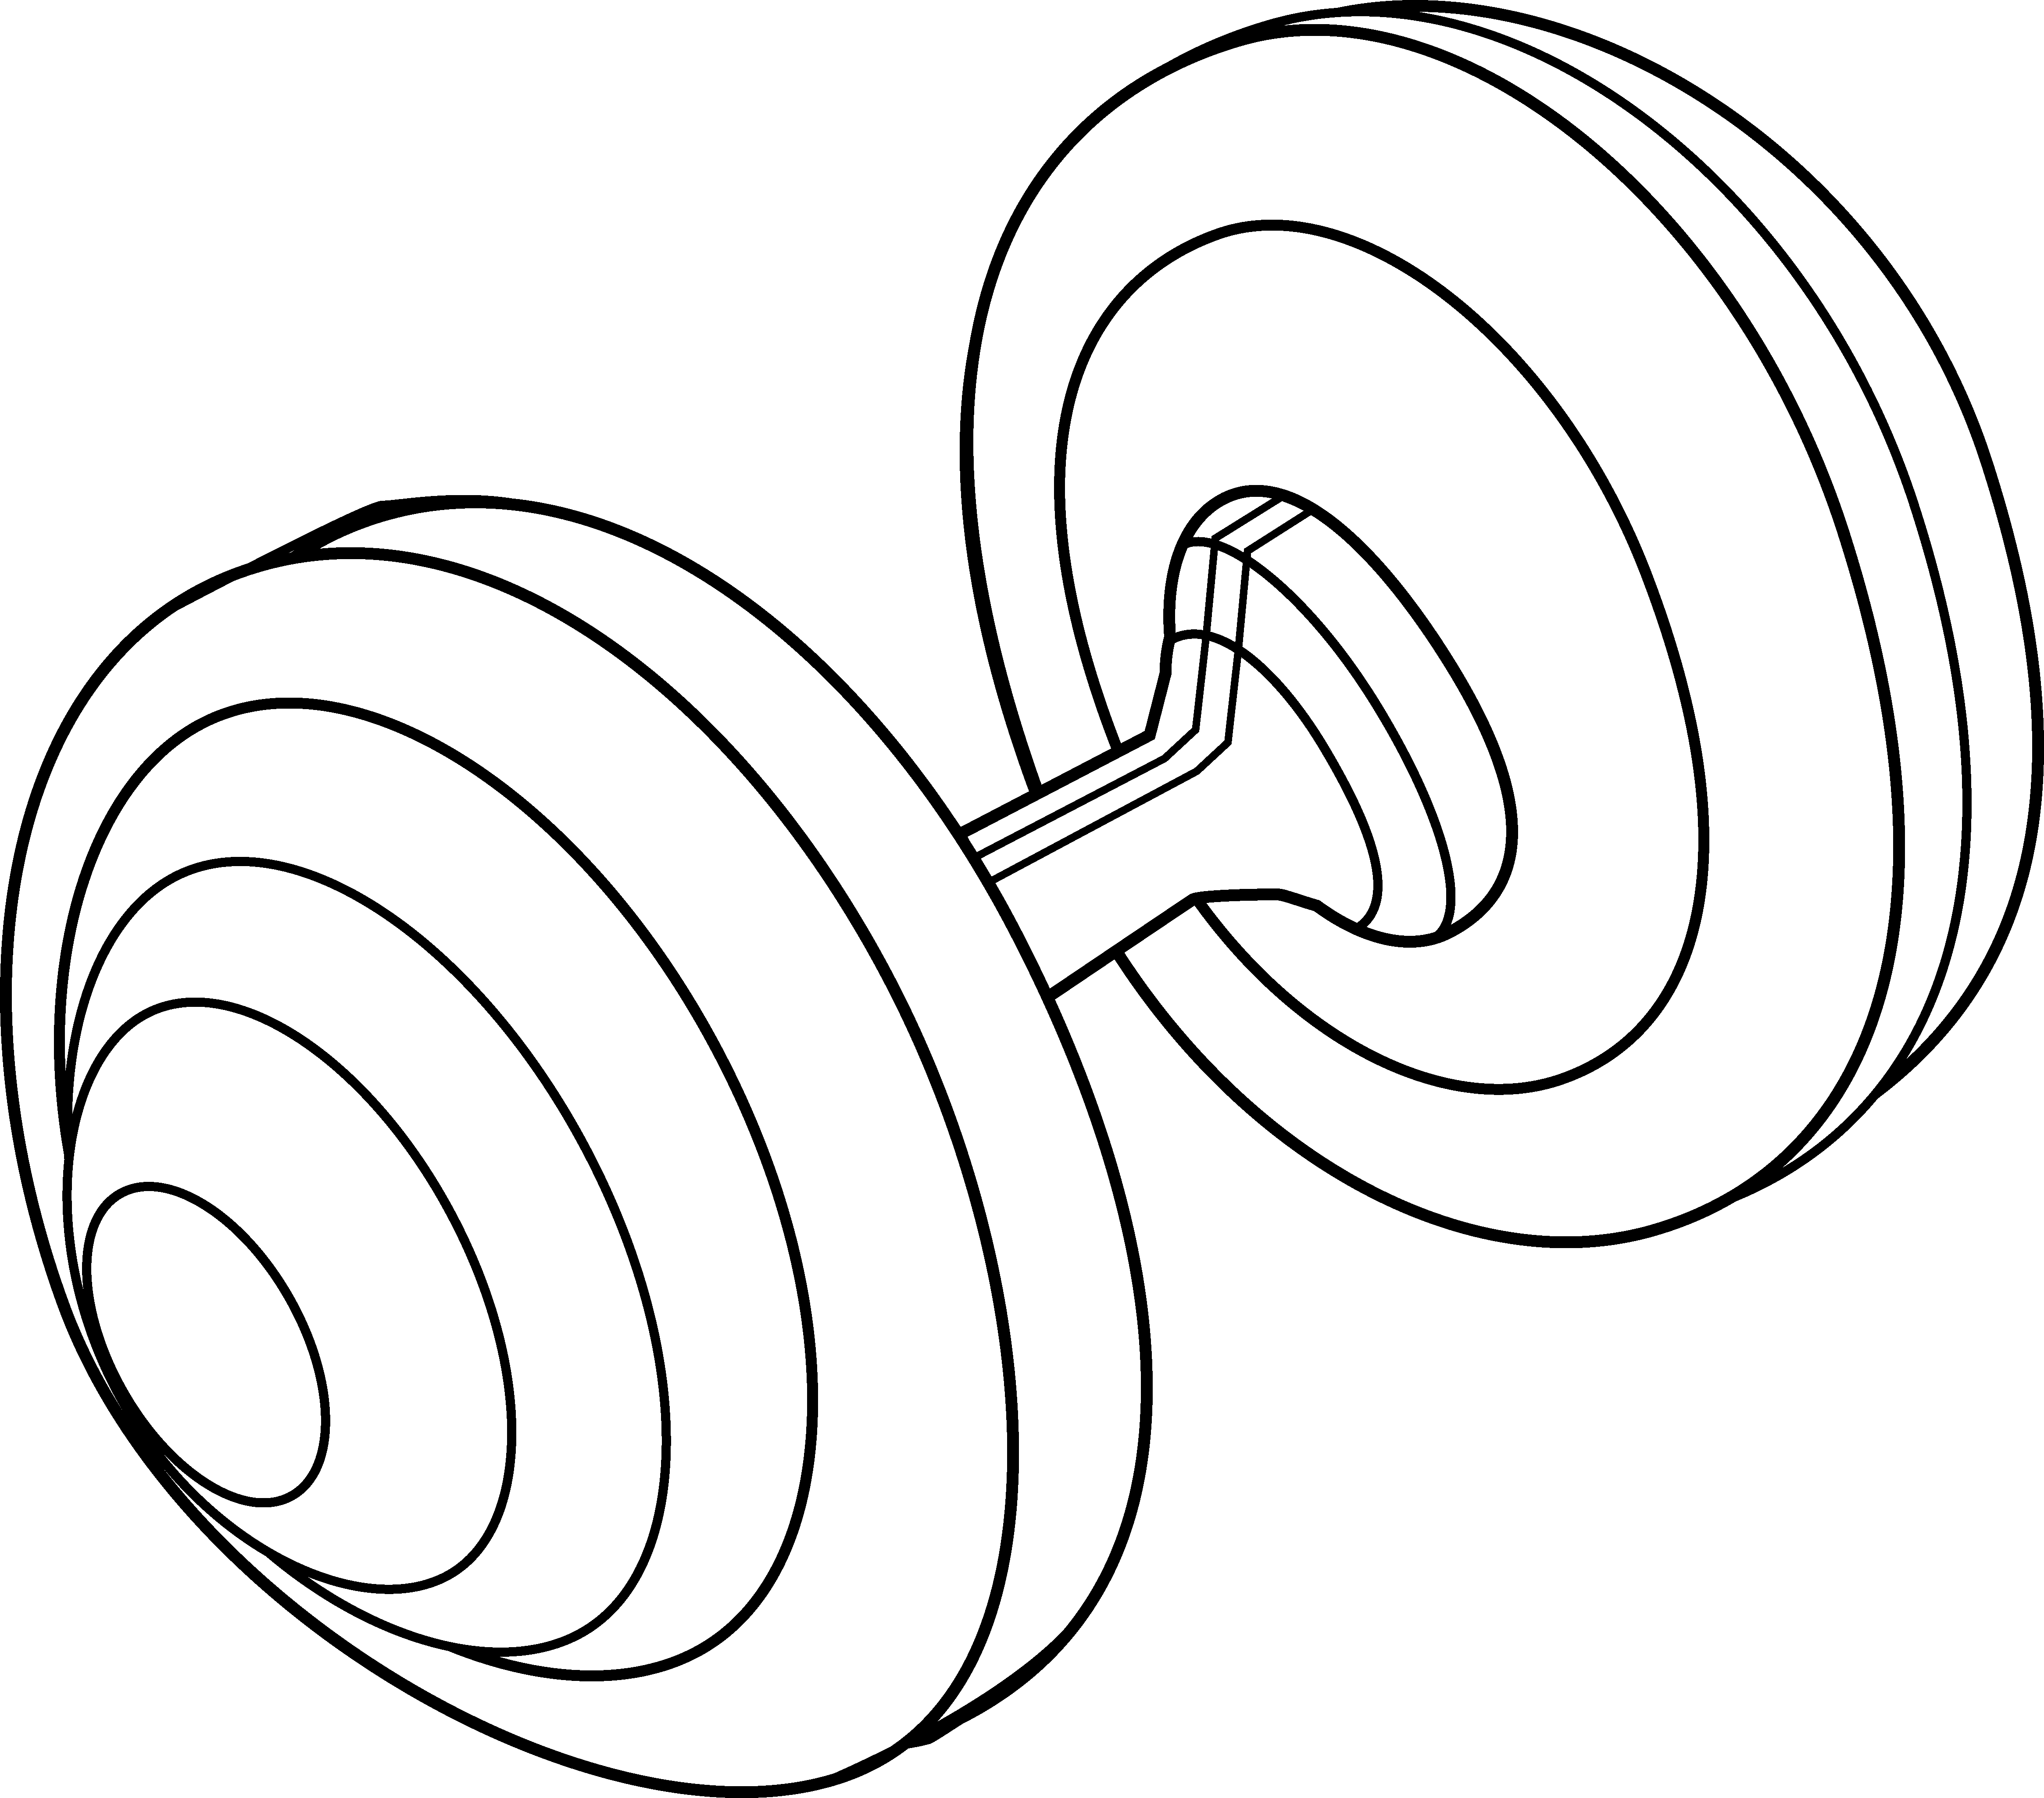 Exercise clipart line art. Barbell weight free clip